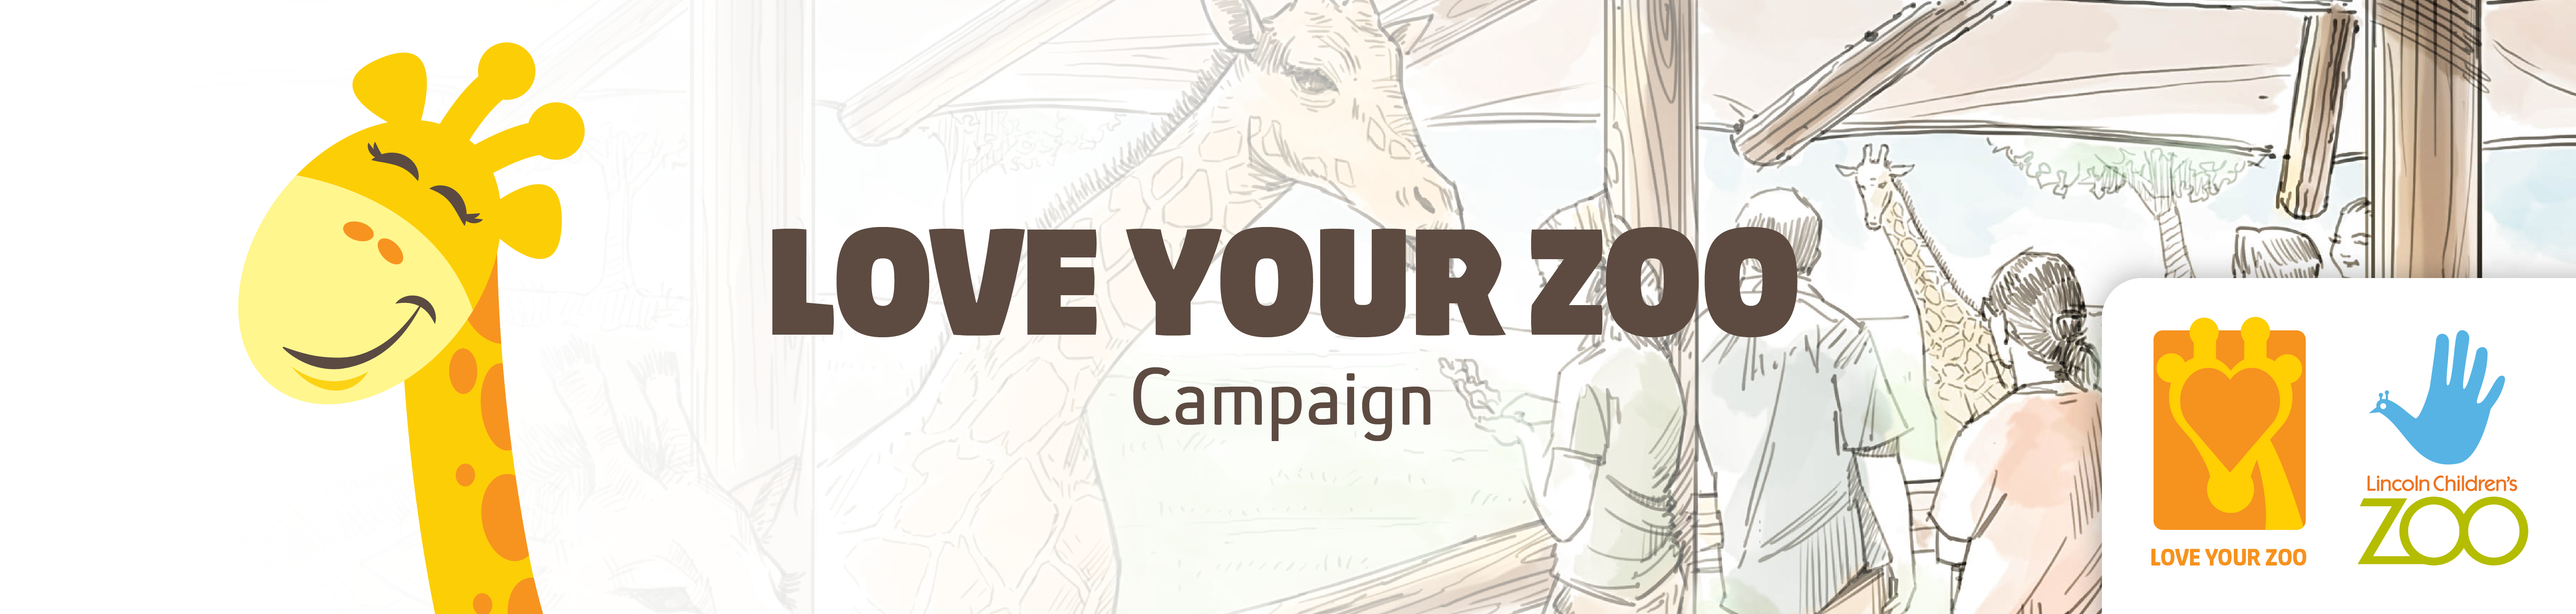 Love Your Zoo Campaign Lincoln Children's Zoo